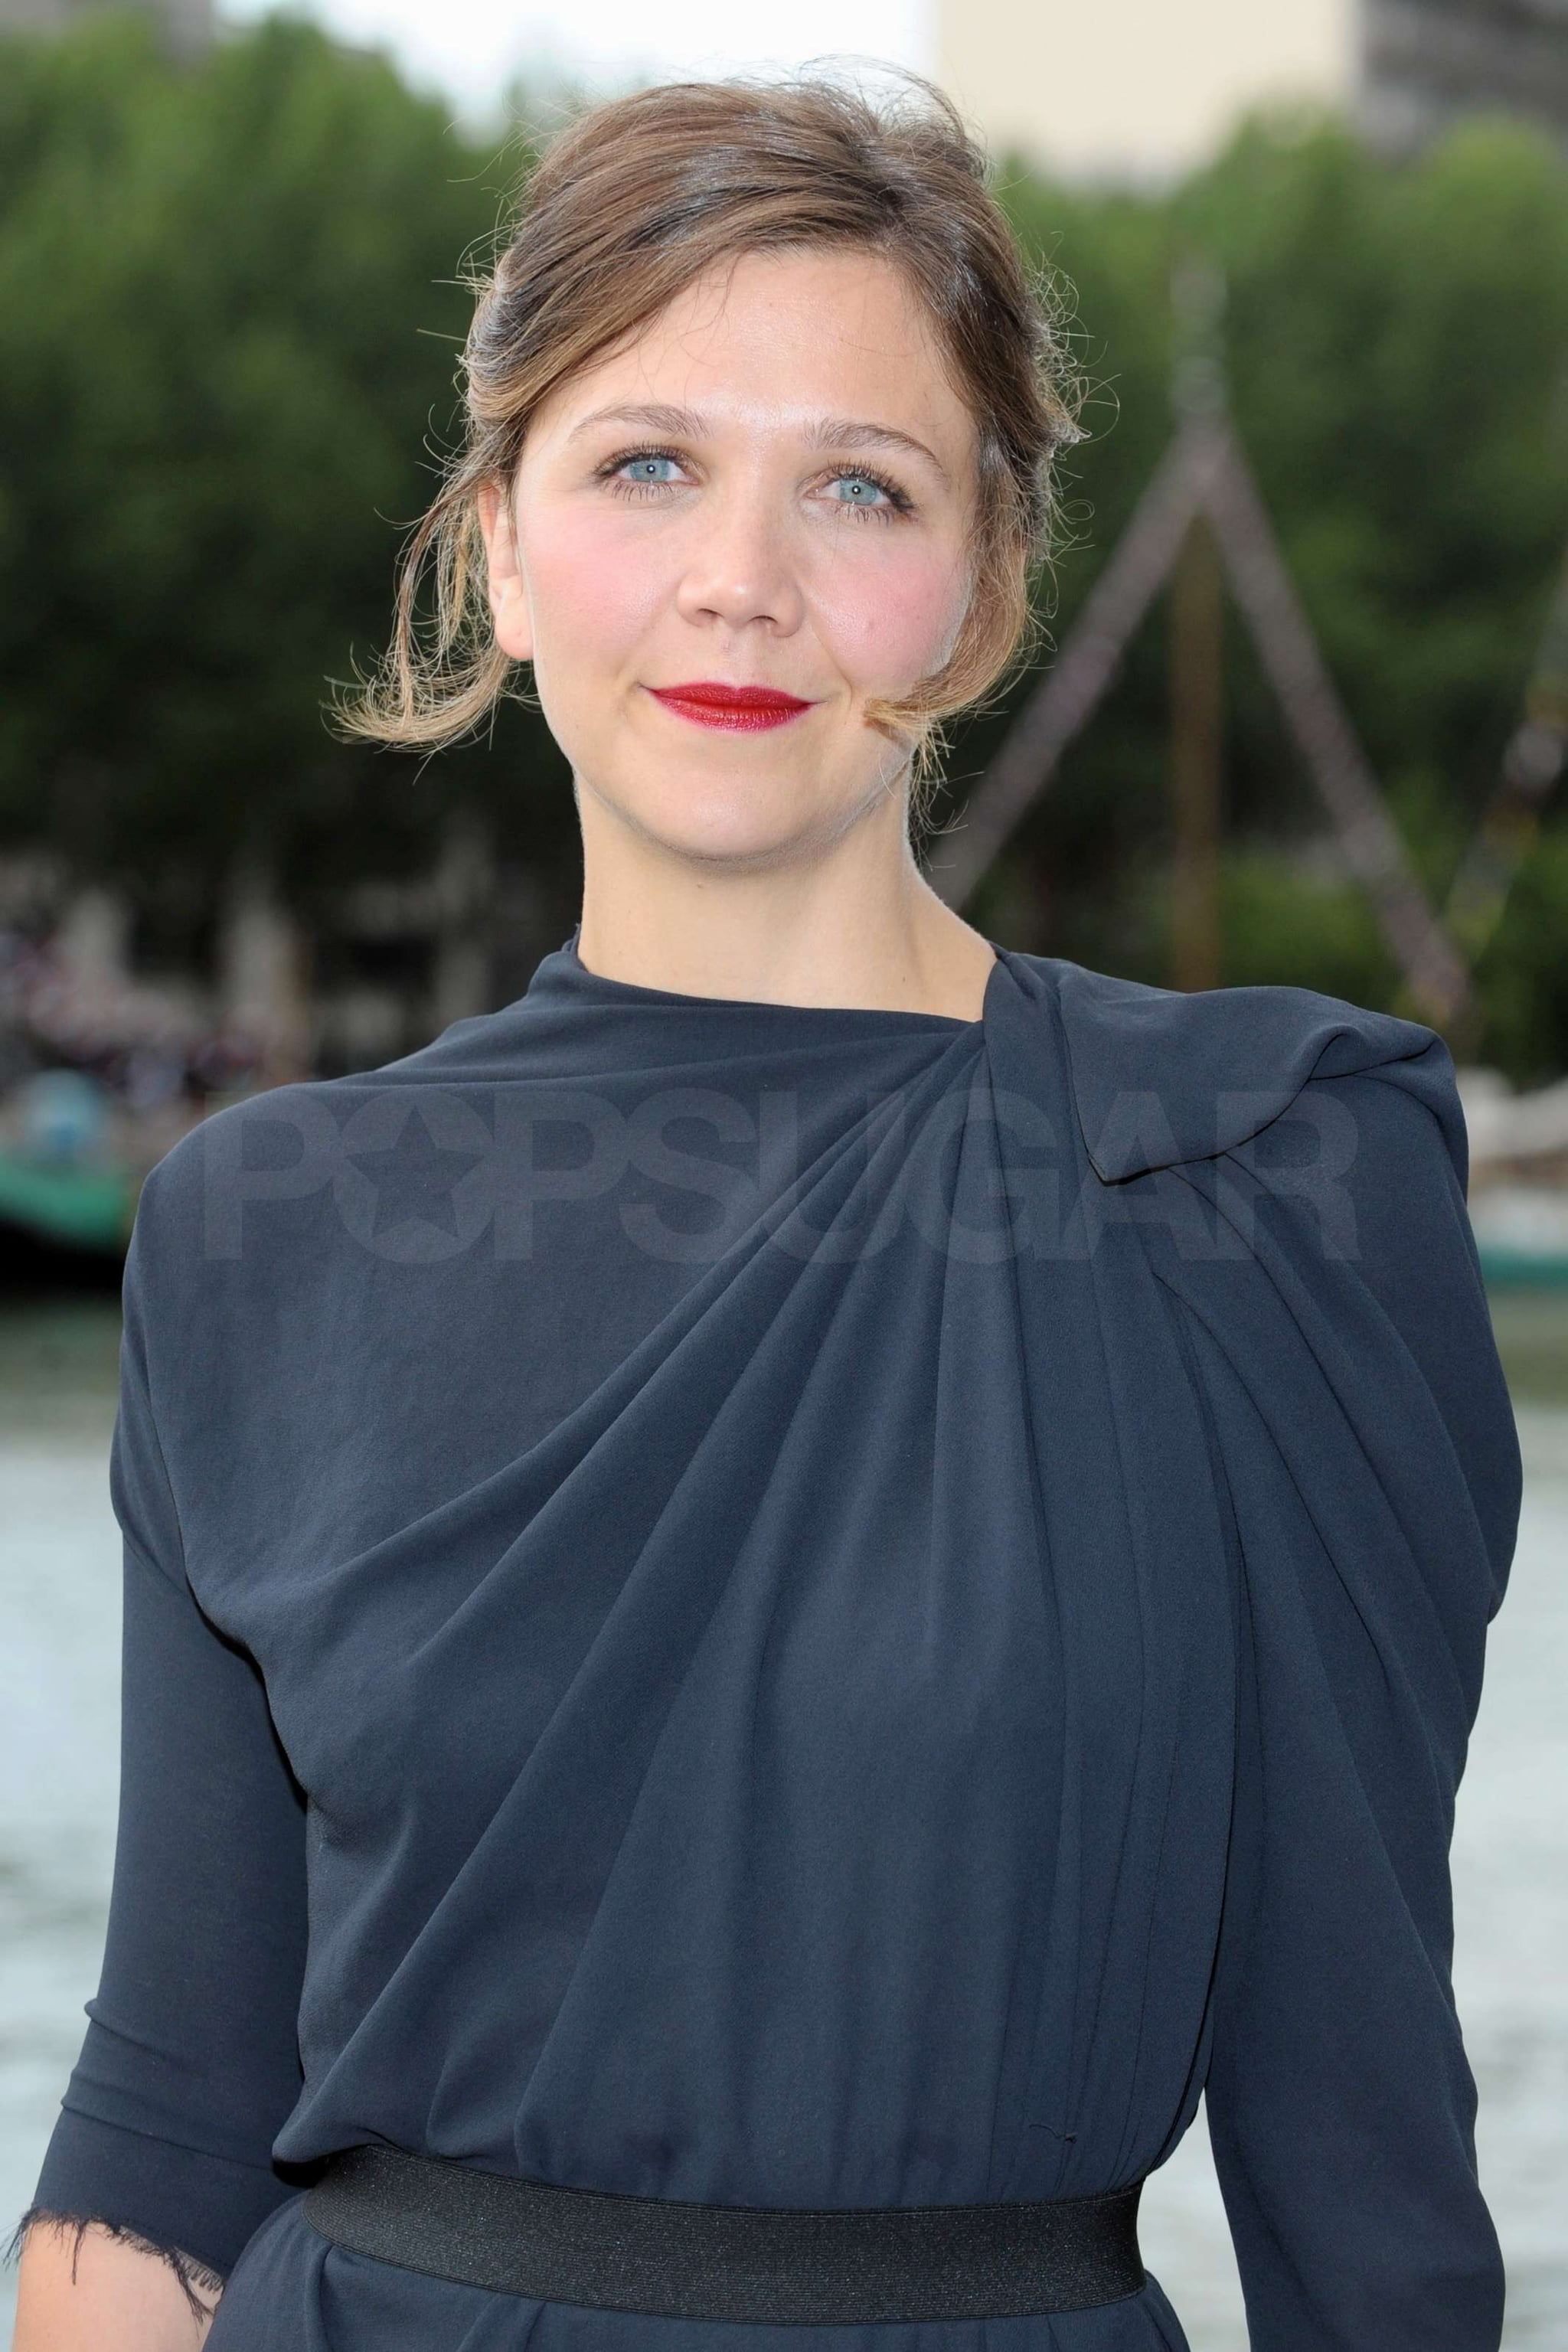 Maggie Gyllenhaal nudes (39 fotos), video Pussy, YouTube, swimsuit 2019